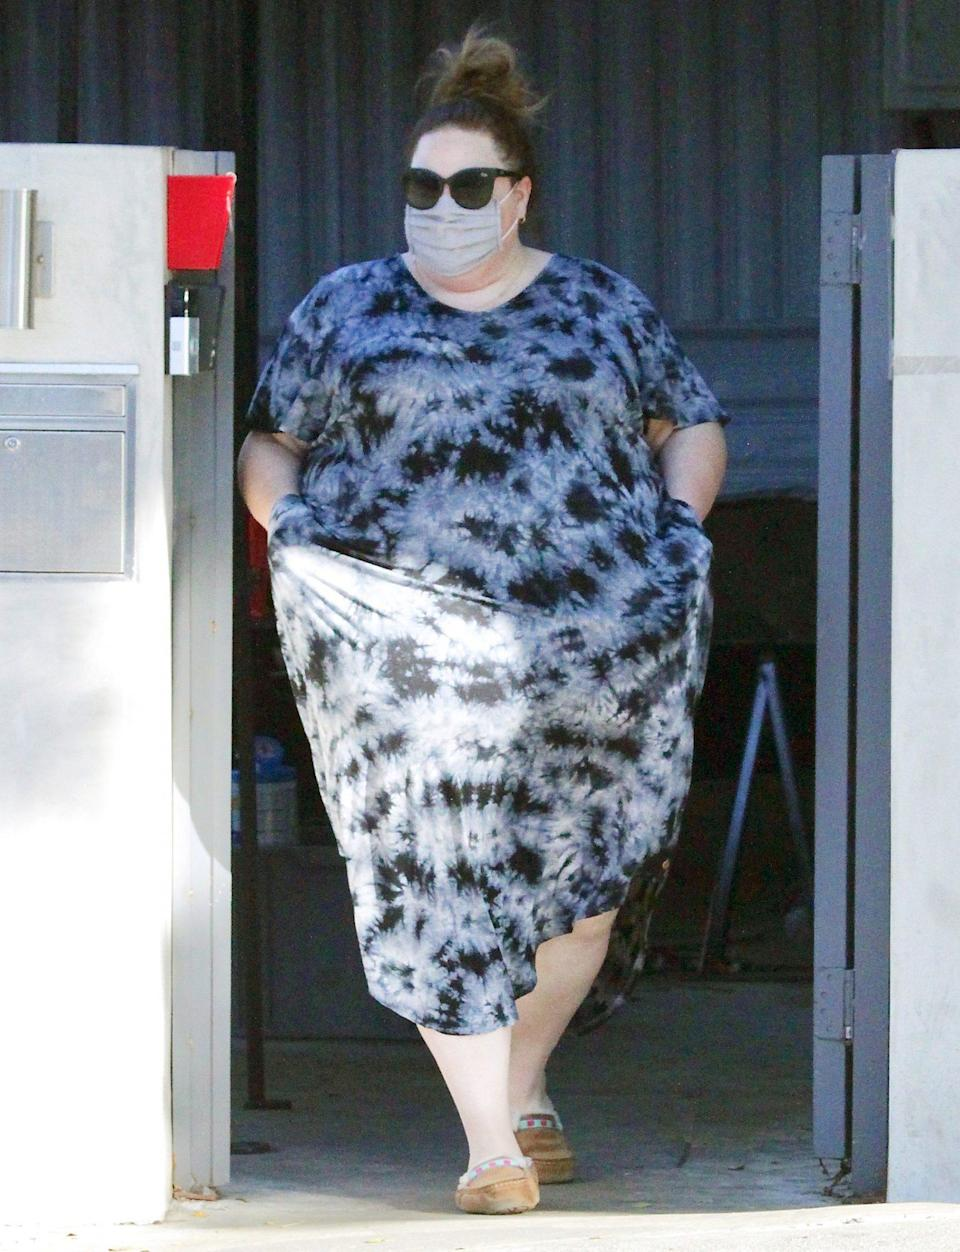 <p>Chrissy Metz steps out to run errands in a tie dye dress on Monday in L.A. </p>